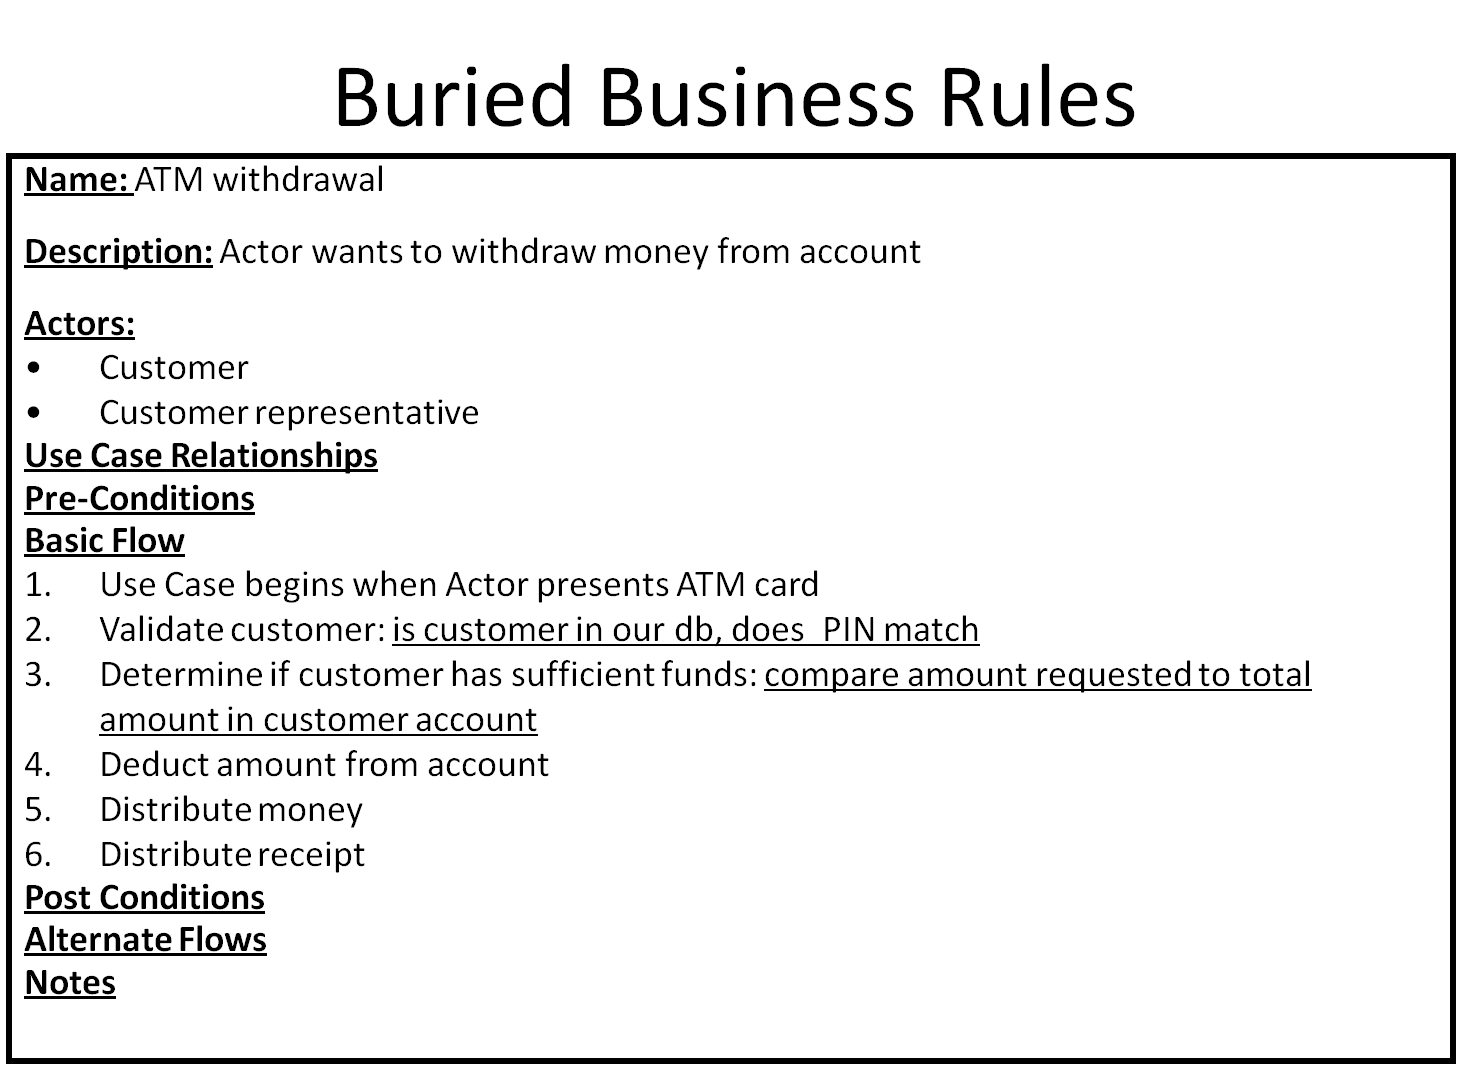 Use cases and business rules can they work together business use cases and business rules can they work together business analyst community resources modern analyst accmission Images